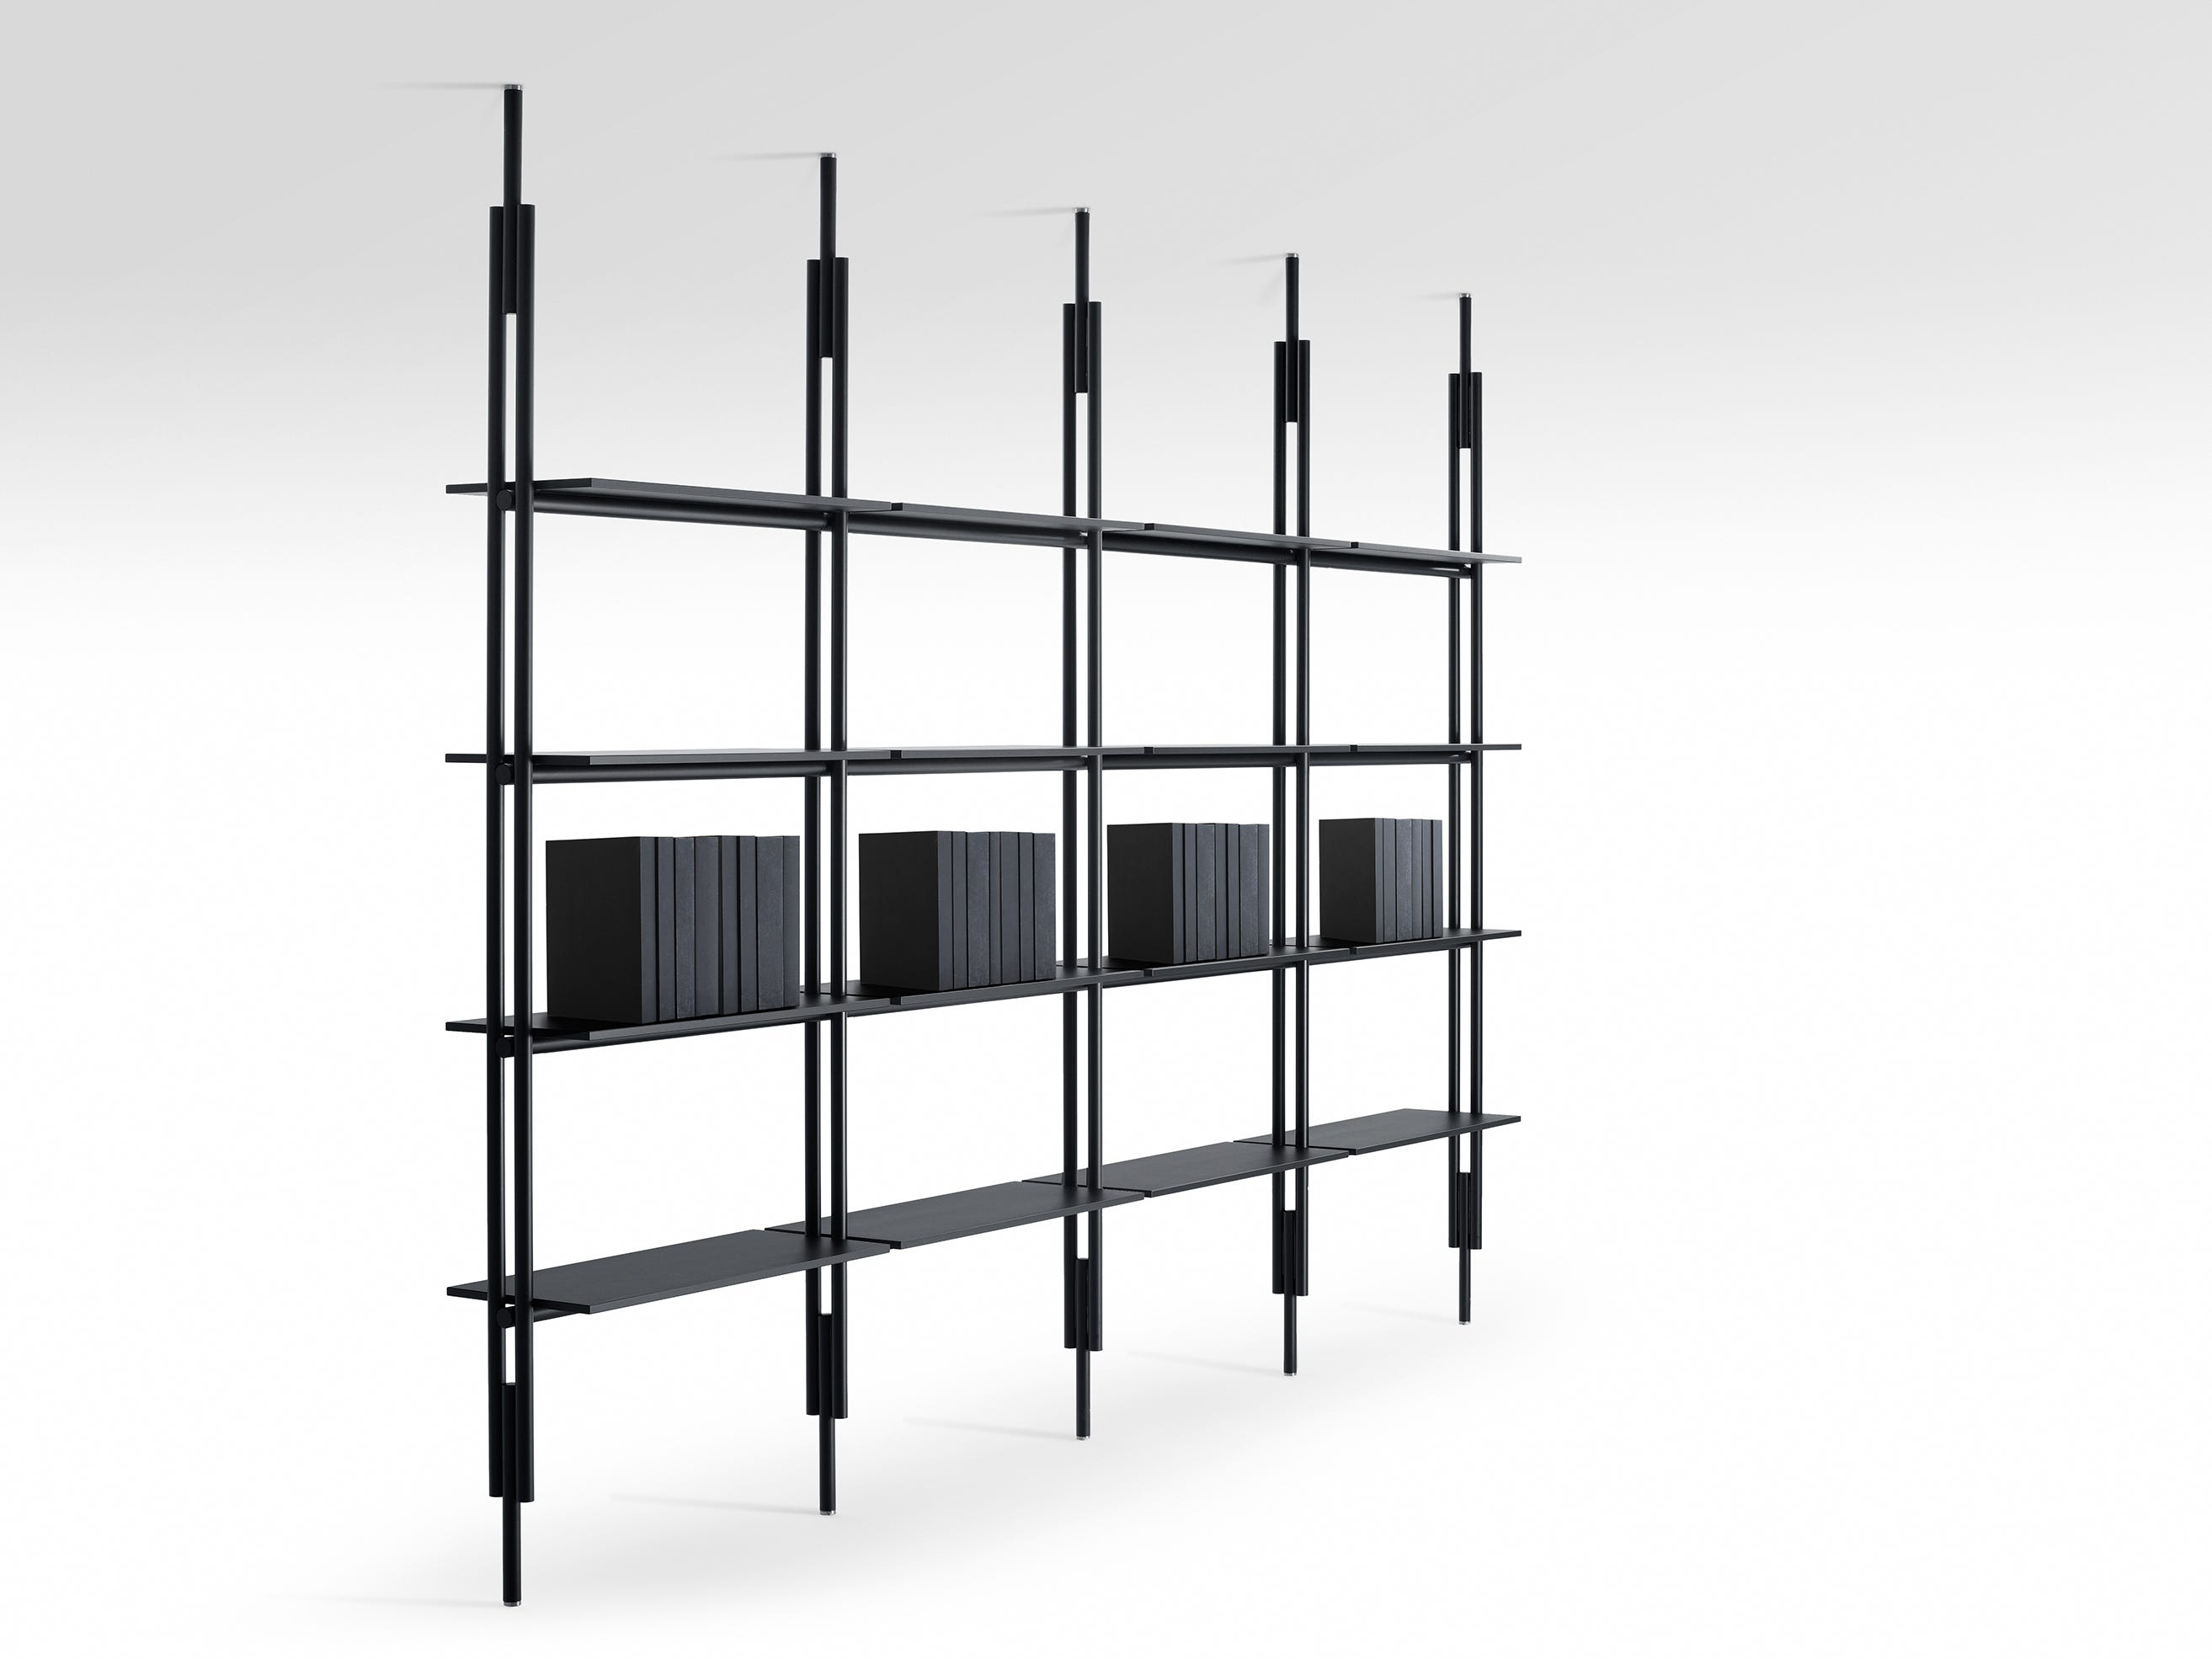 London-based Cypriot designer Michael Anastassiades modernizes a classic design for B and B Italia -- the 1950s room center bookcase, transforming it into a clean, minimal, architectural structure available in matte black or white. Engineered supports are concealed in the design, inside vertical elements with a rounded section made of extruded aluminum and integrated by an invisible floor-to-ceiling telescopic adjustment system, which is available in 14 heights, ranging from 86.6 to 127.5 inches. Shelves come in two lengths, 29.5 inches and 35.4 inches, just shy of 12 inches deep with two finishes. For vertical elements and shelves.